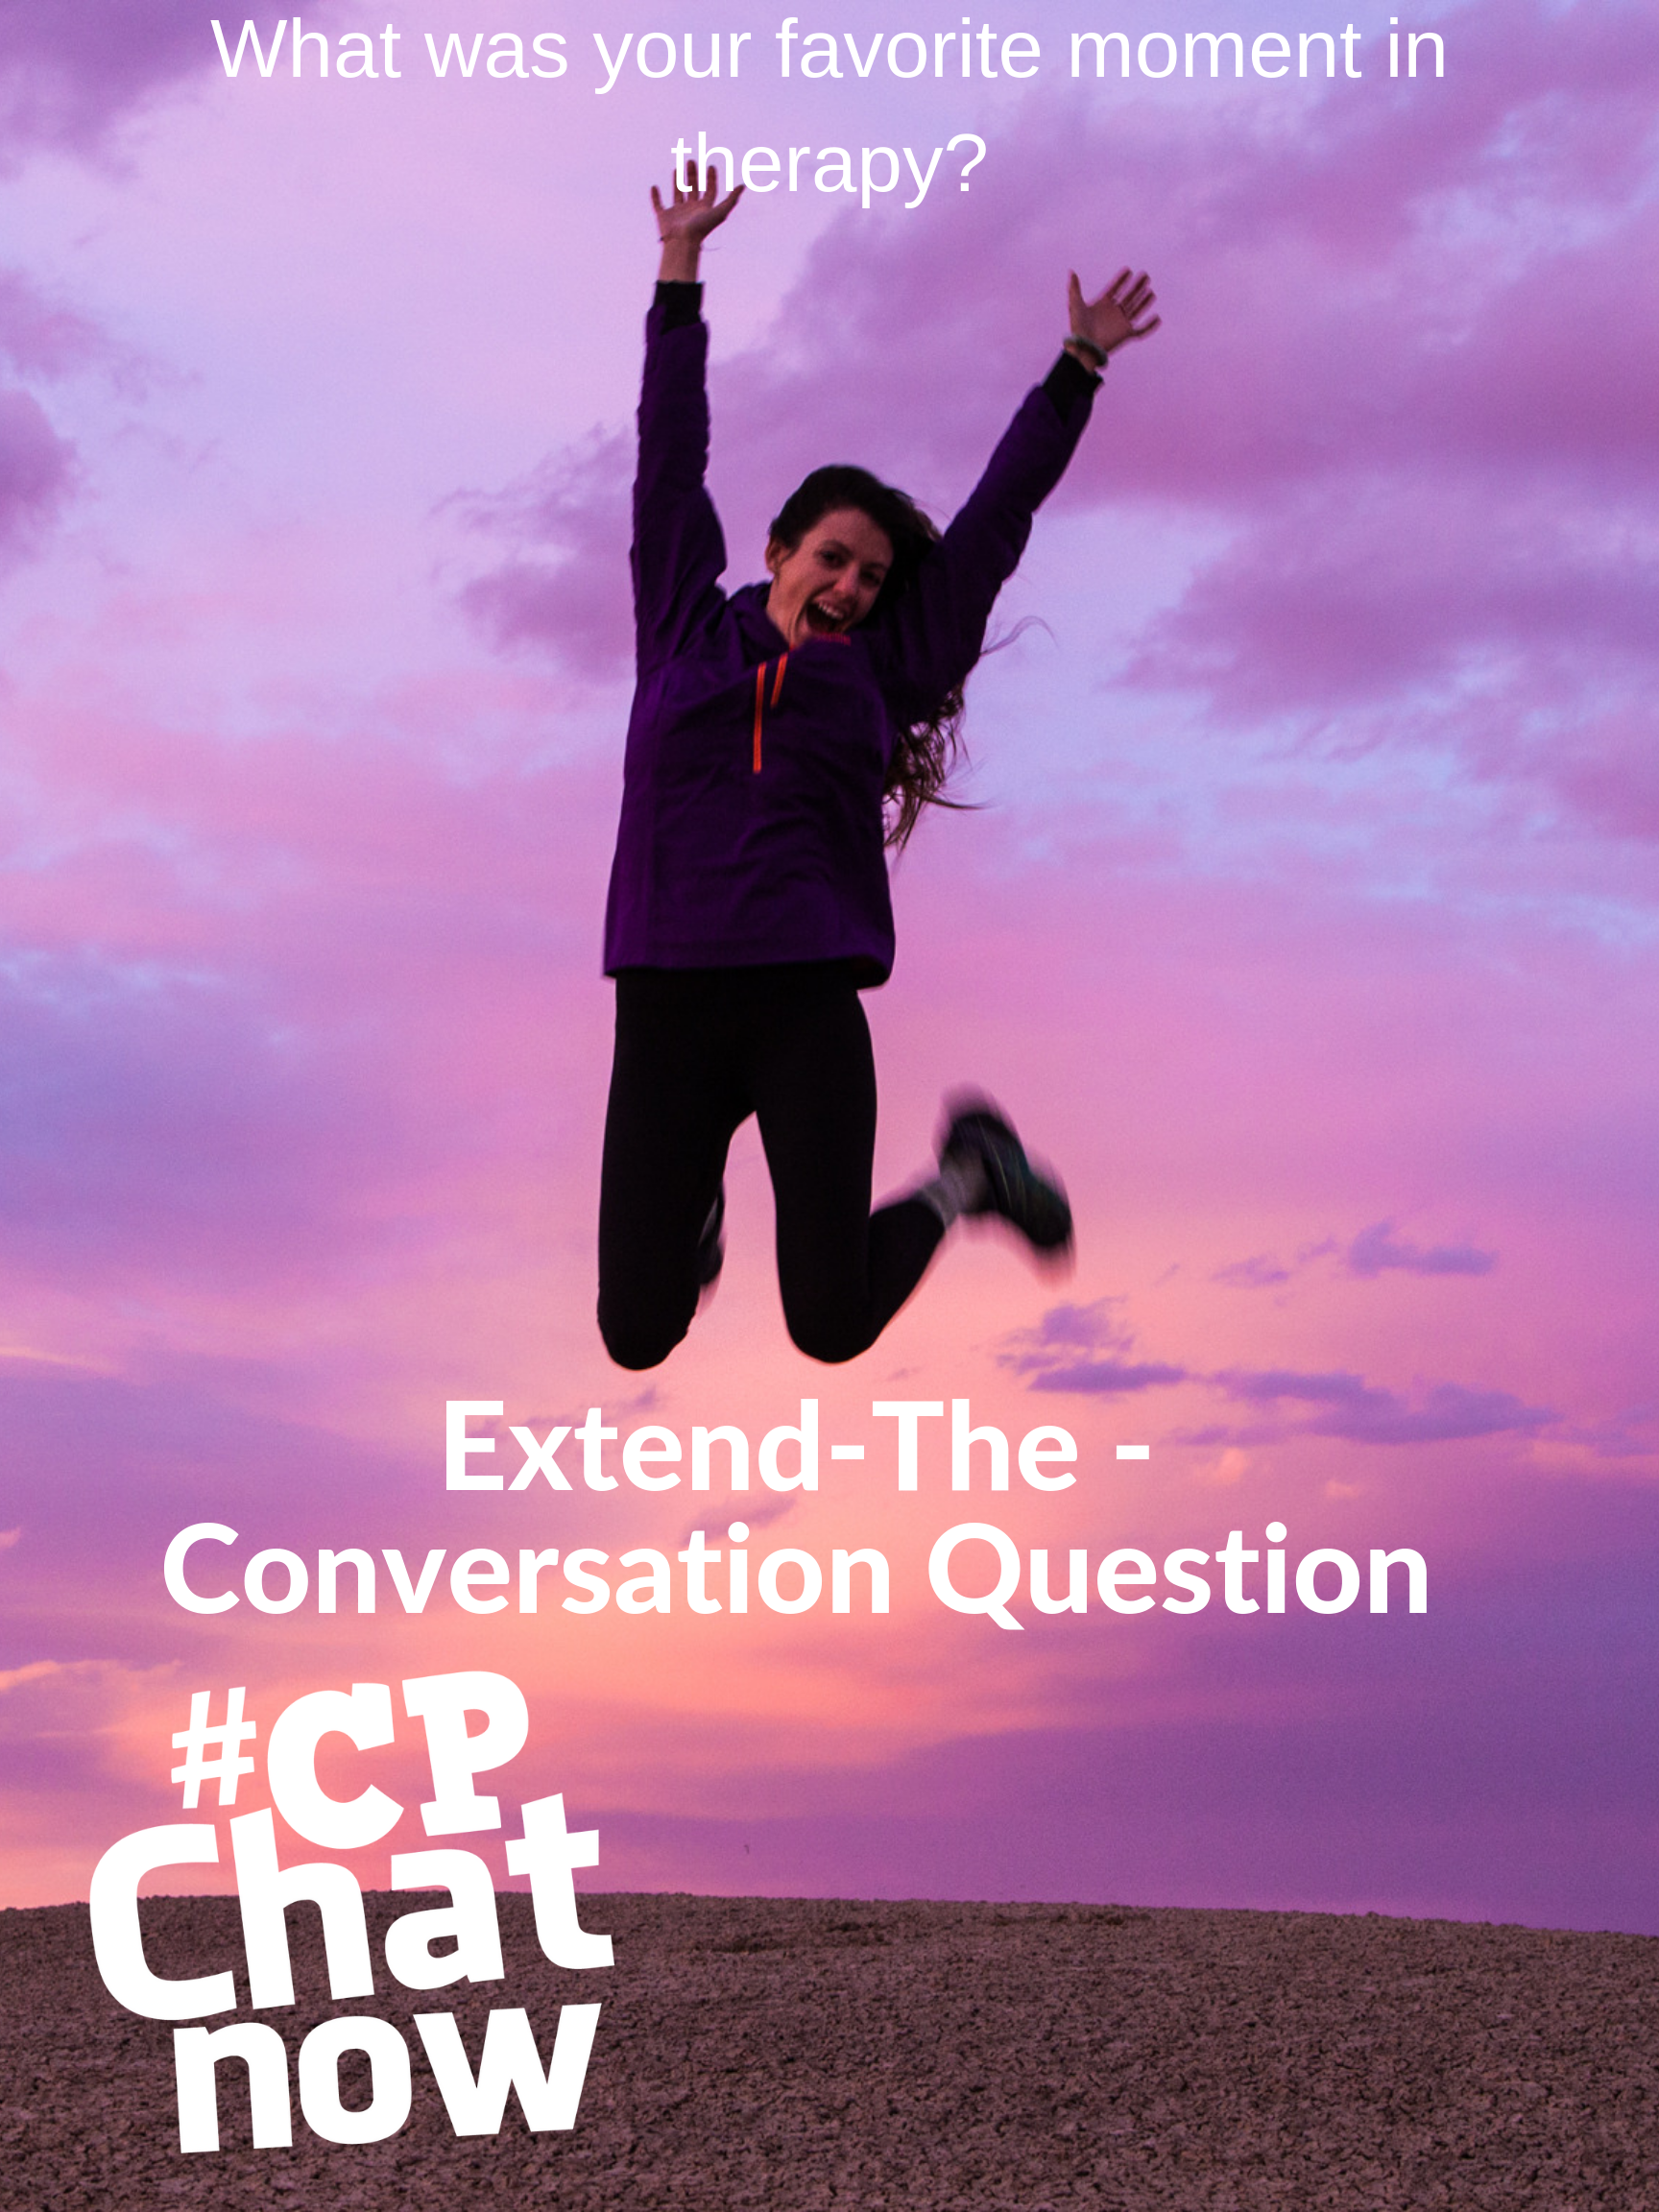 A picture of a woman jumping and smiling before a purple sky. What was your favorite moment in therapy? is above her head in white and Extend-The-Conversation-Question is below her in white with a white #CPChatNow in the lower left hand corner.